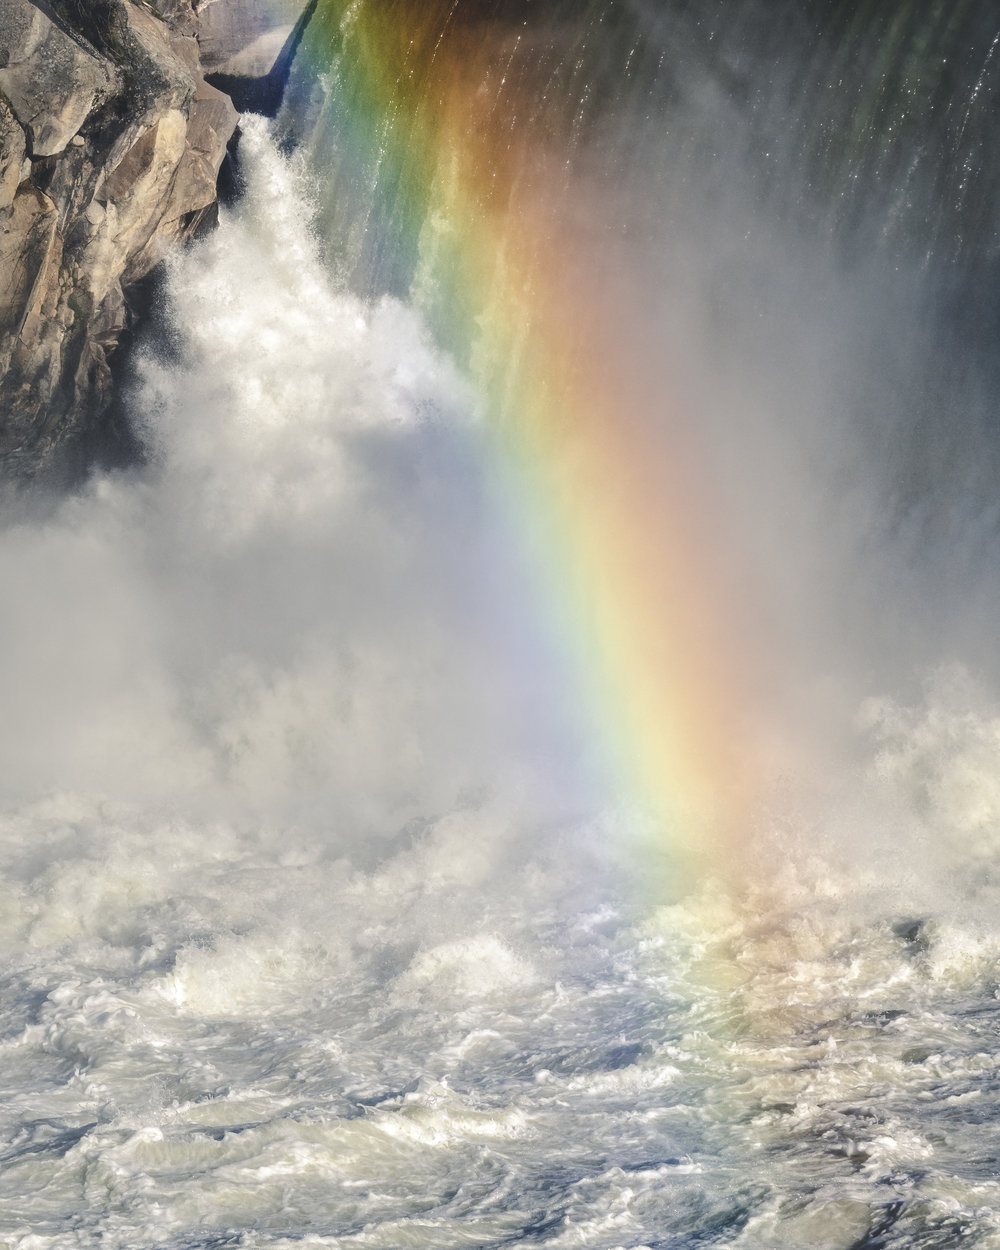 Colorful_Rainbow_in_Waterfall_Mist_Close_Up.jpg